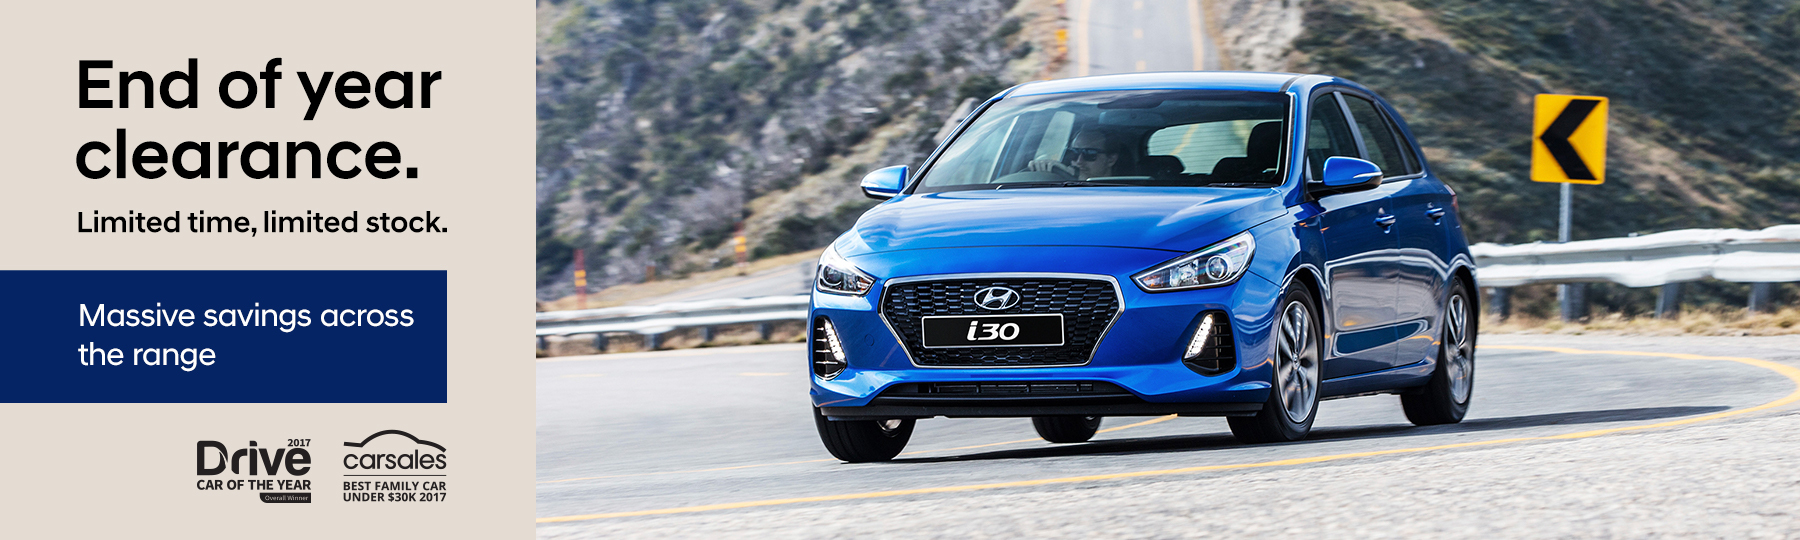 Hyundai - National Offer - End Of Year Clearance